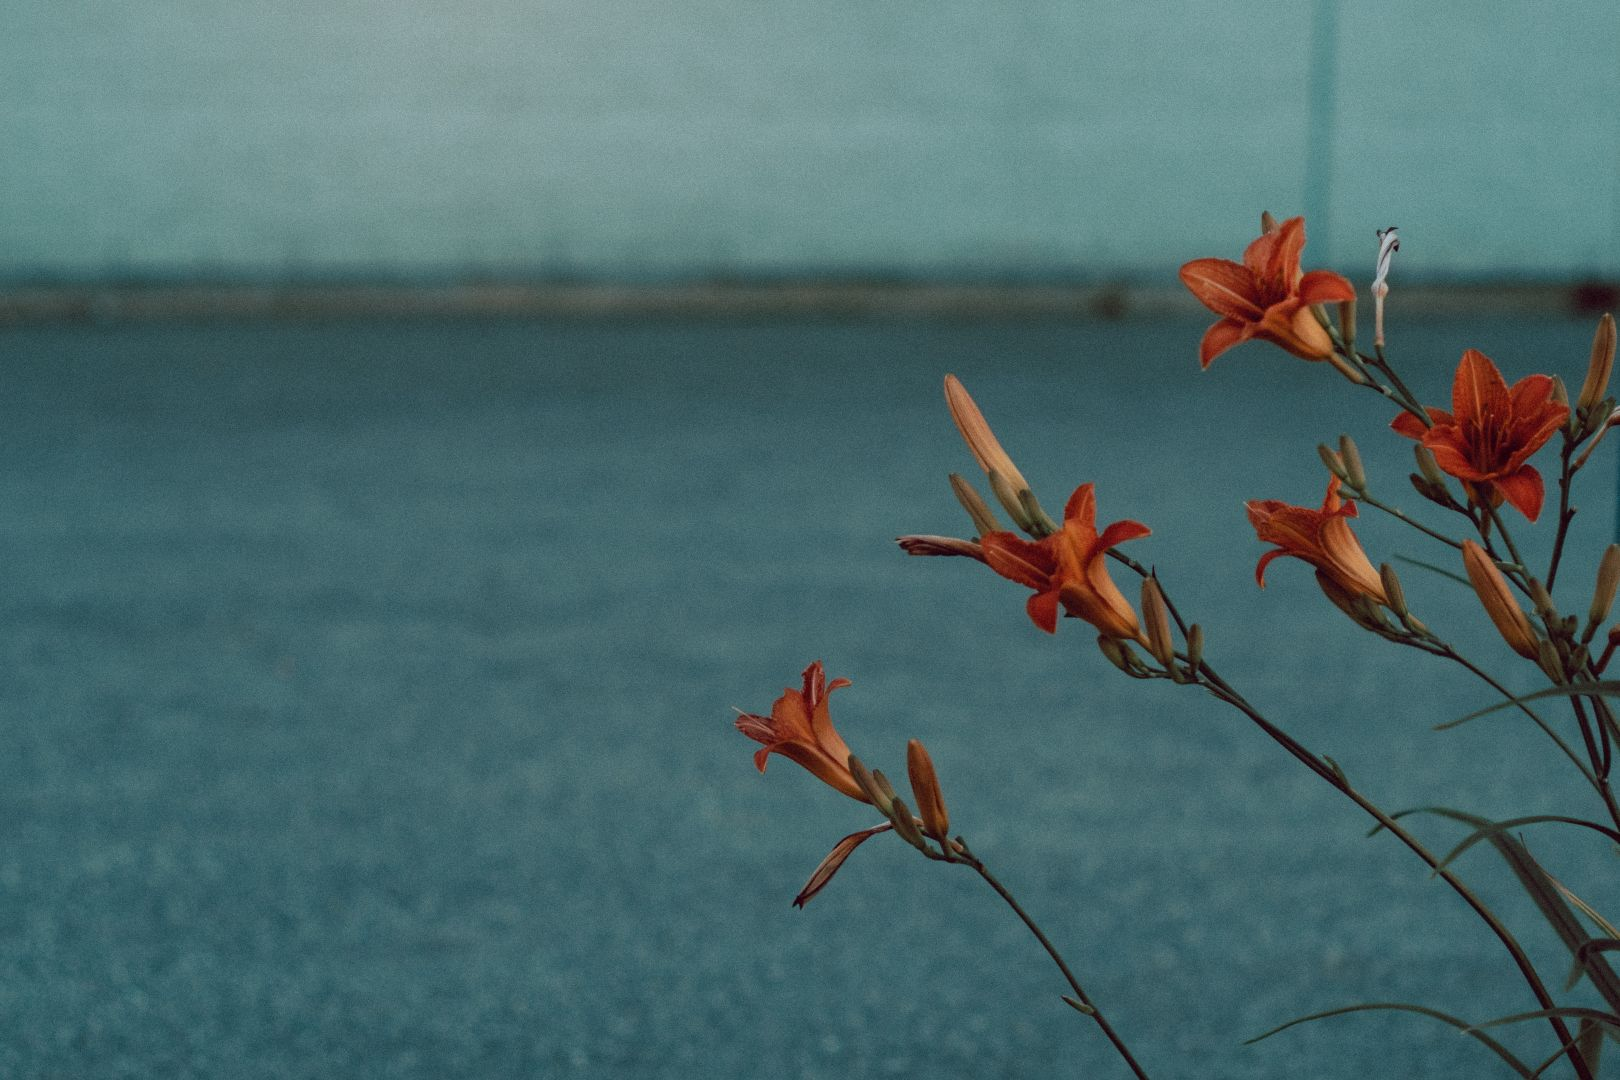 A photo depicting Urban Flowers Less Background